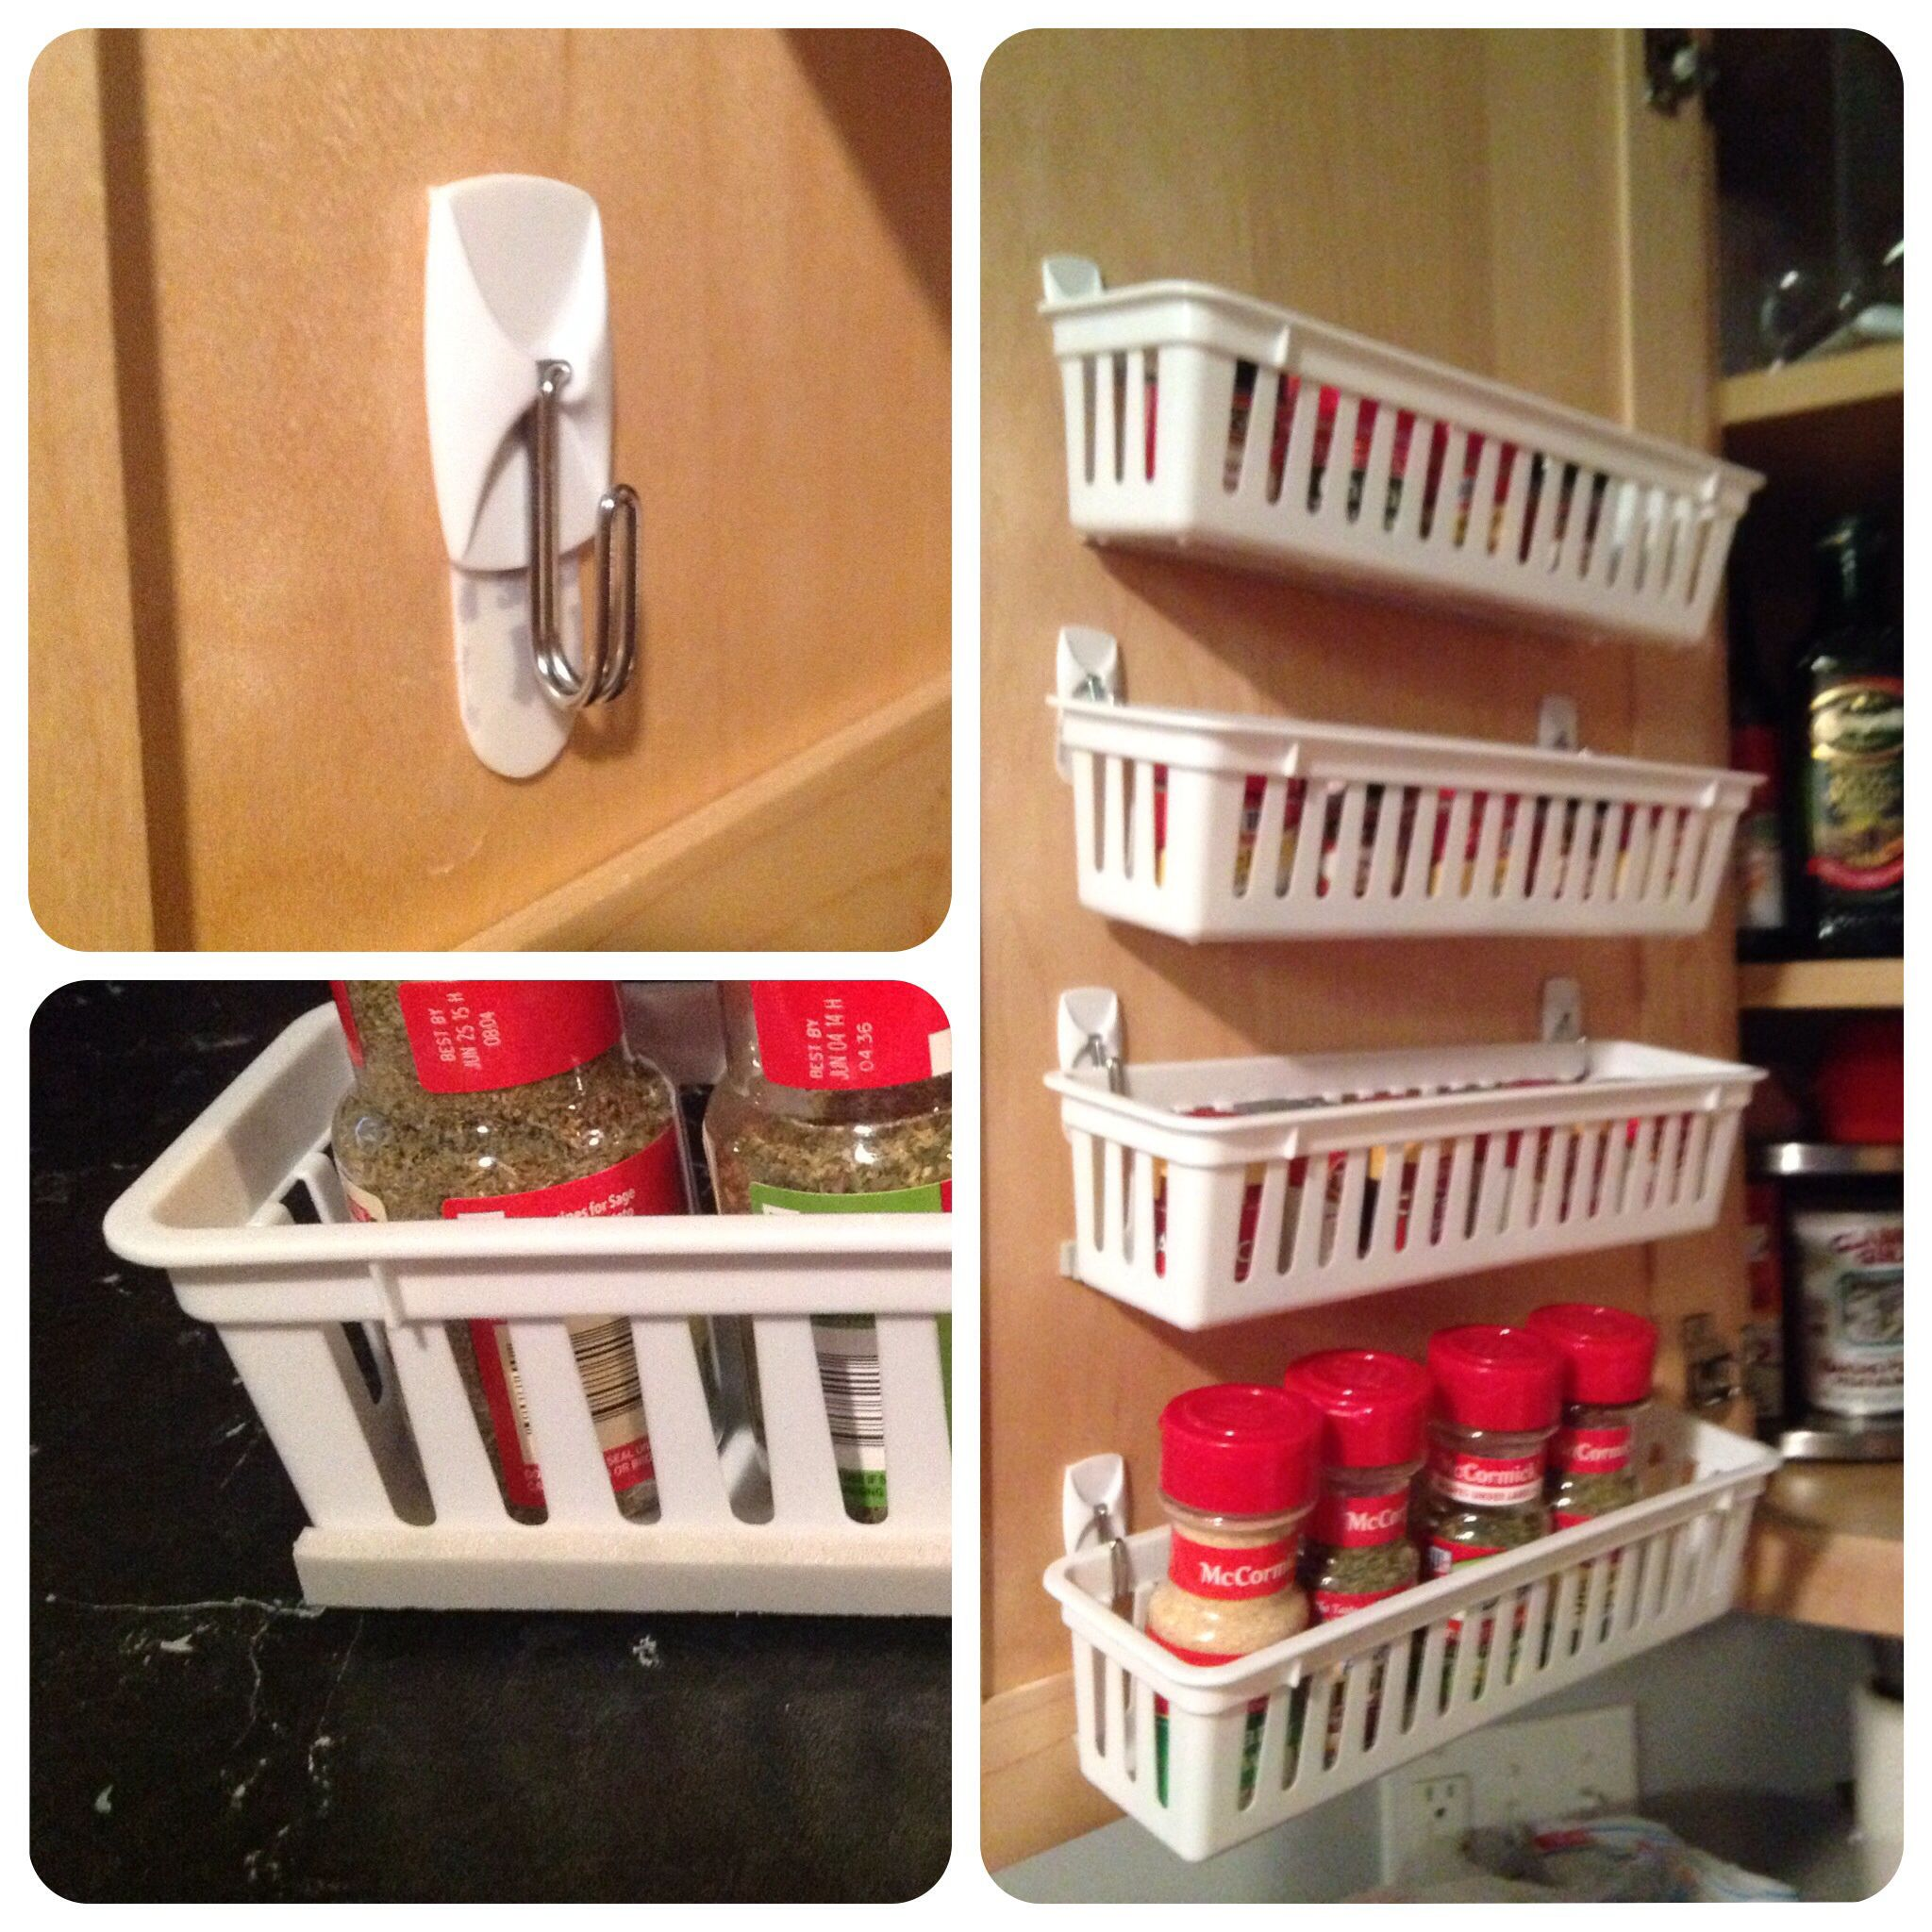 Diy Kitchen Spice Rack: 20 Spice Rack Ideas For Both Roomy And Cramped Kitchen